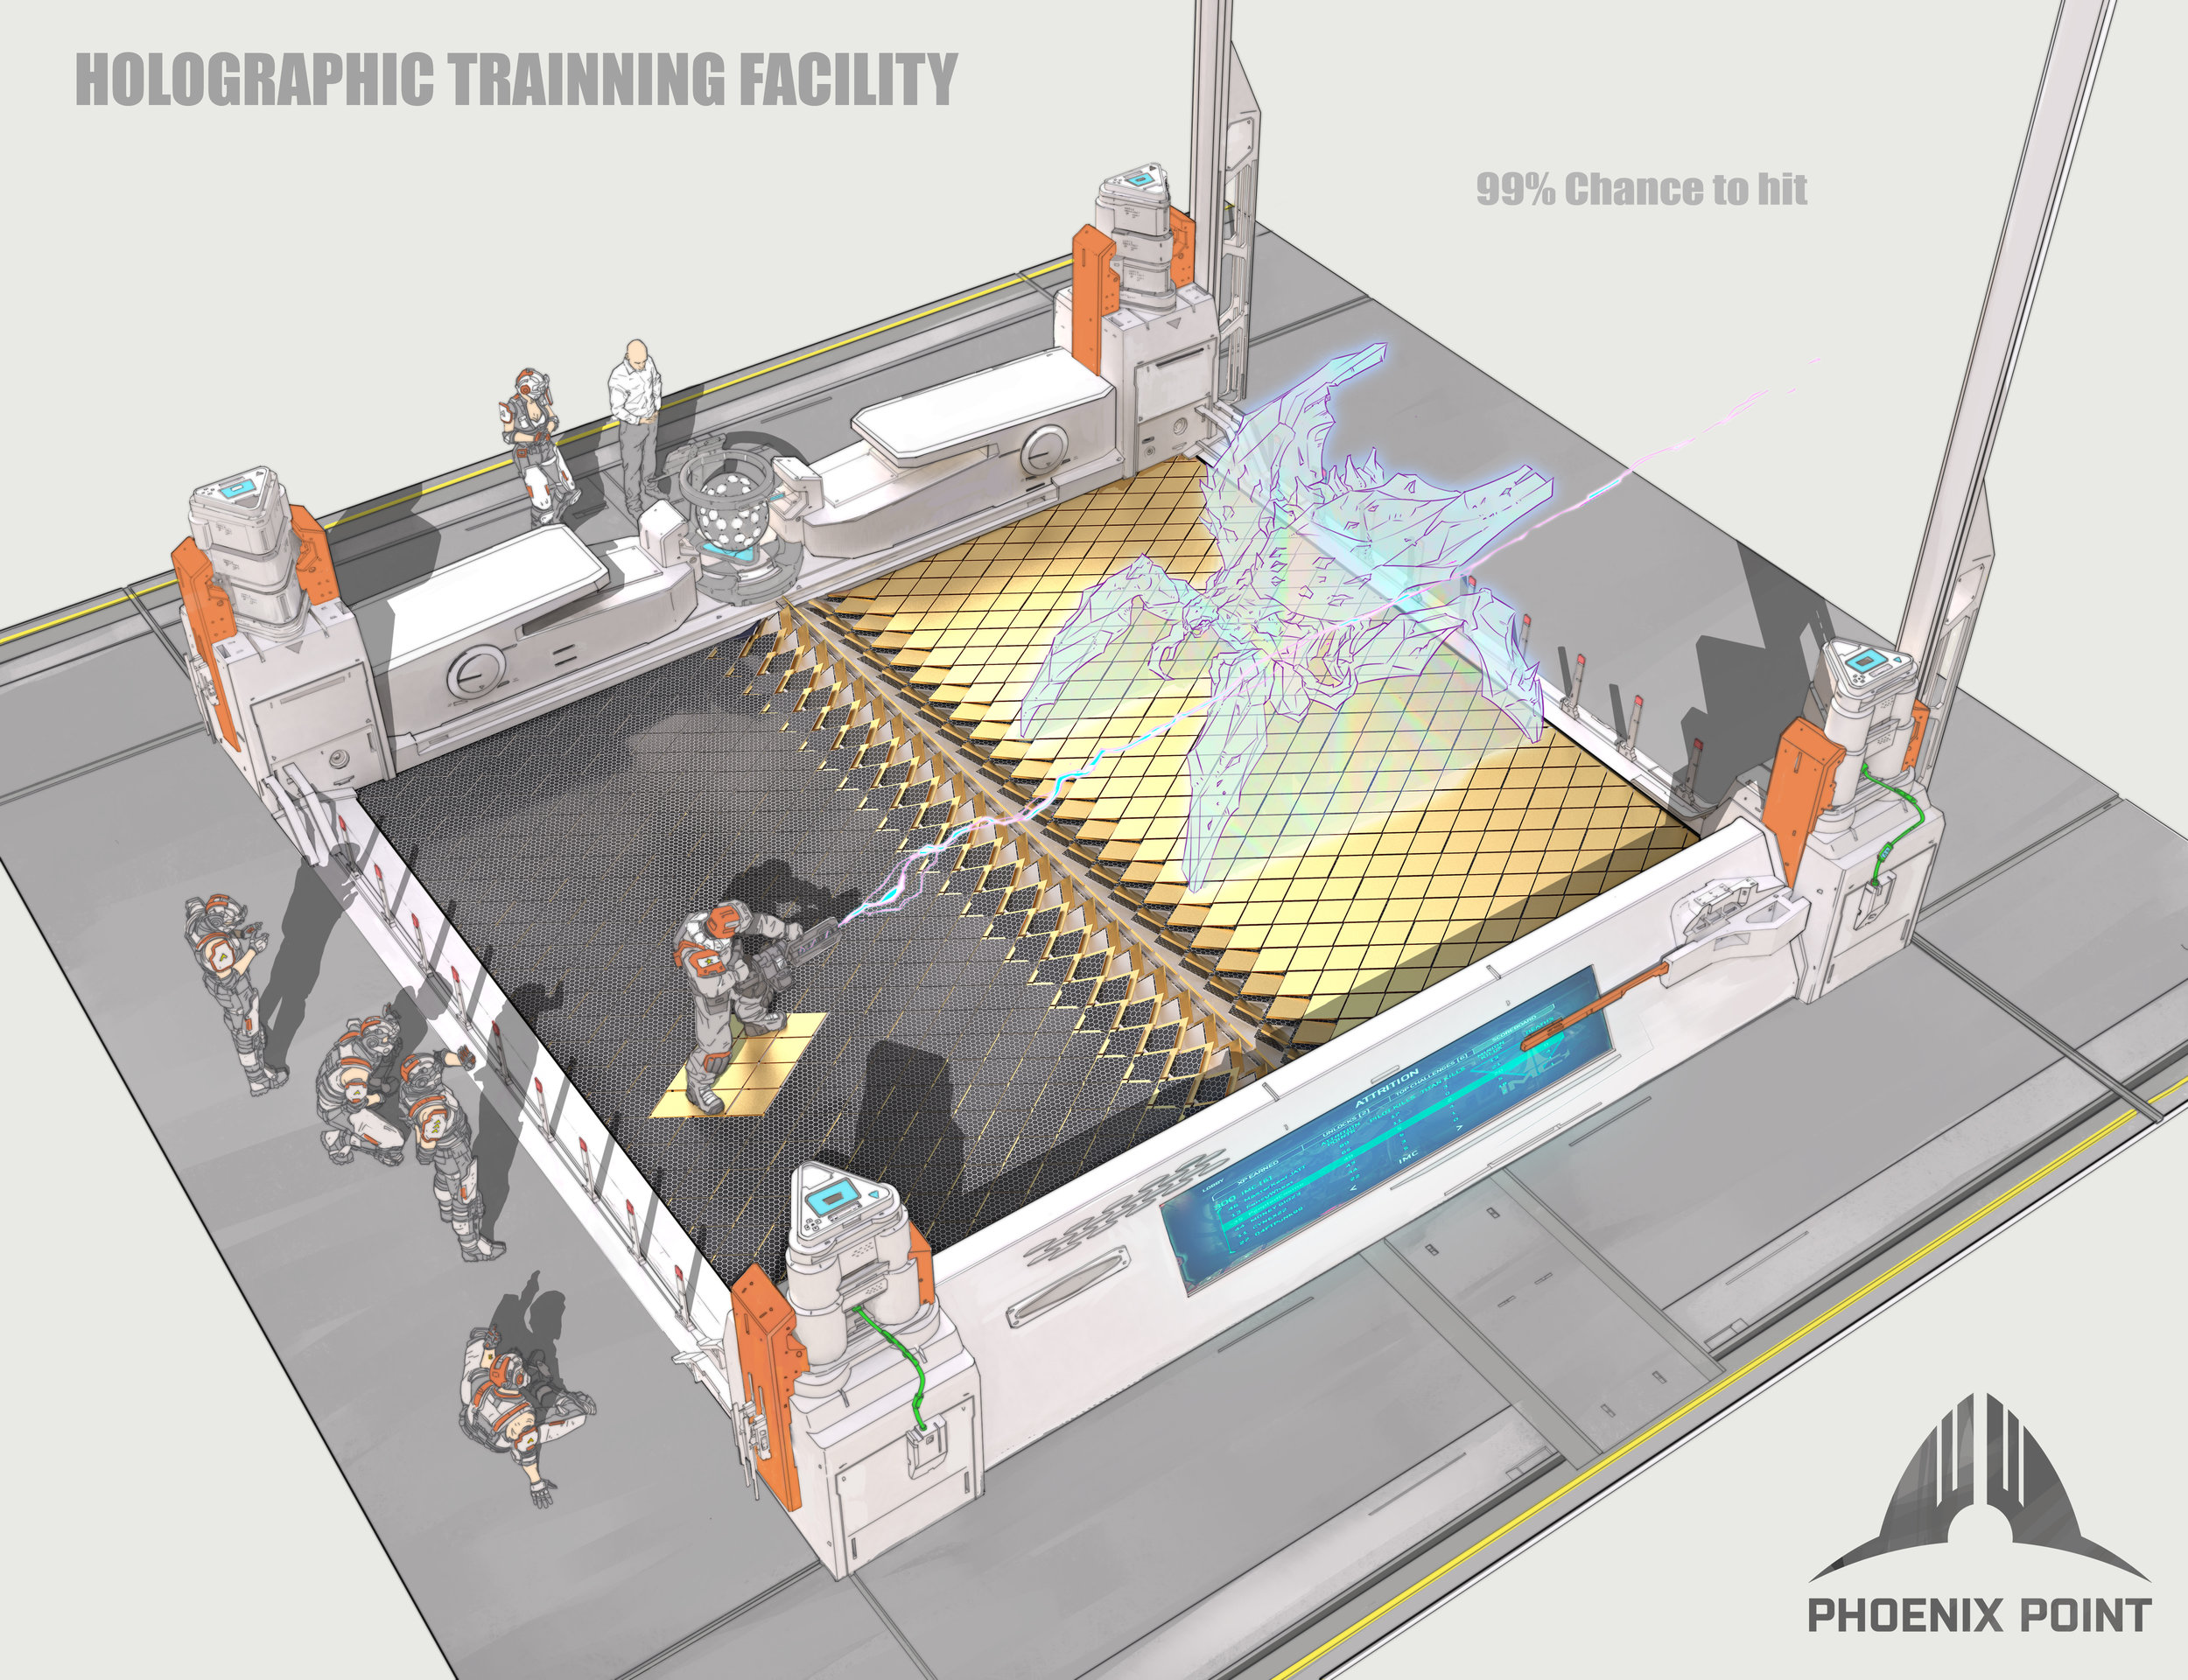 The holographic training facility